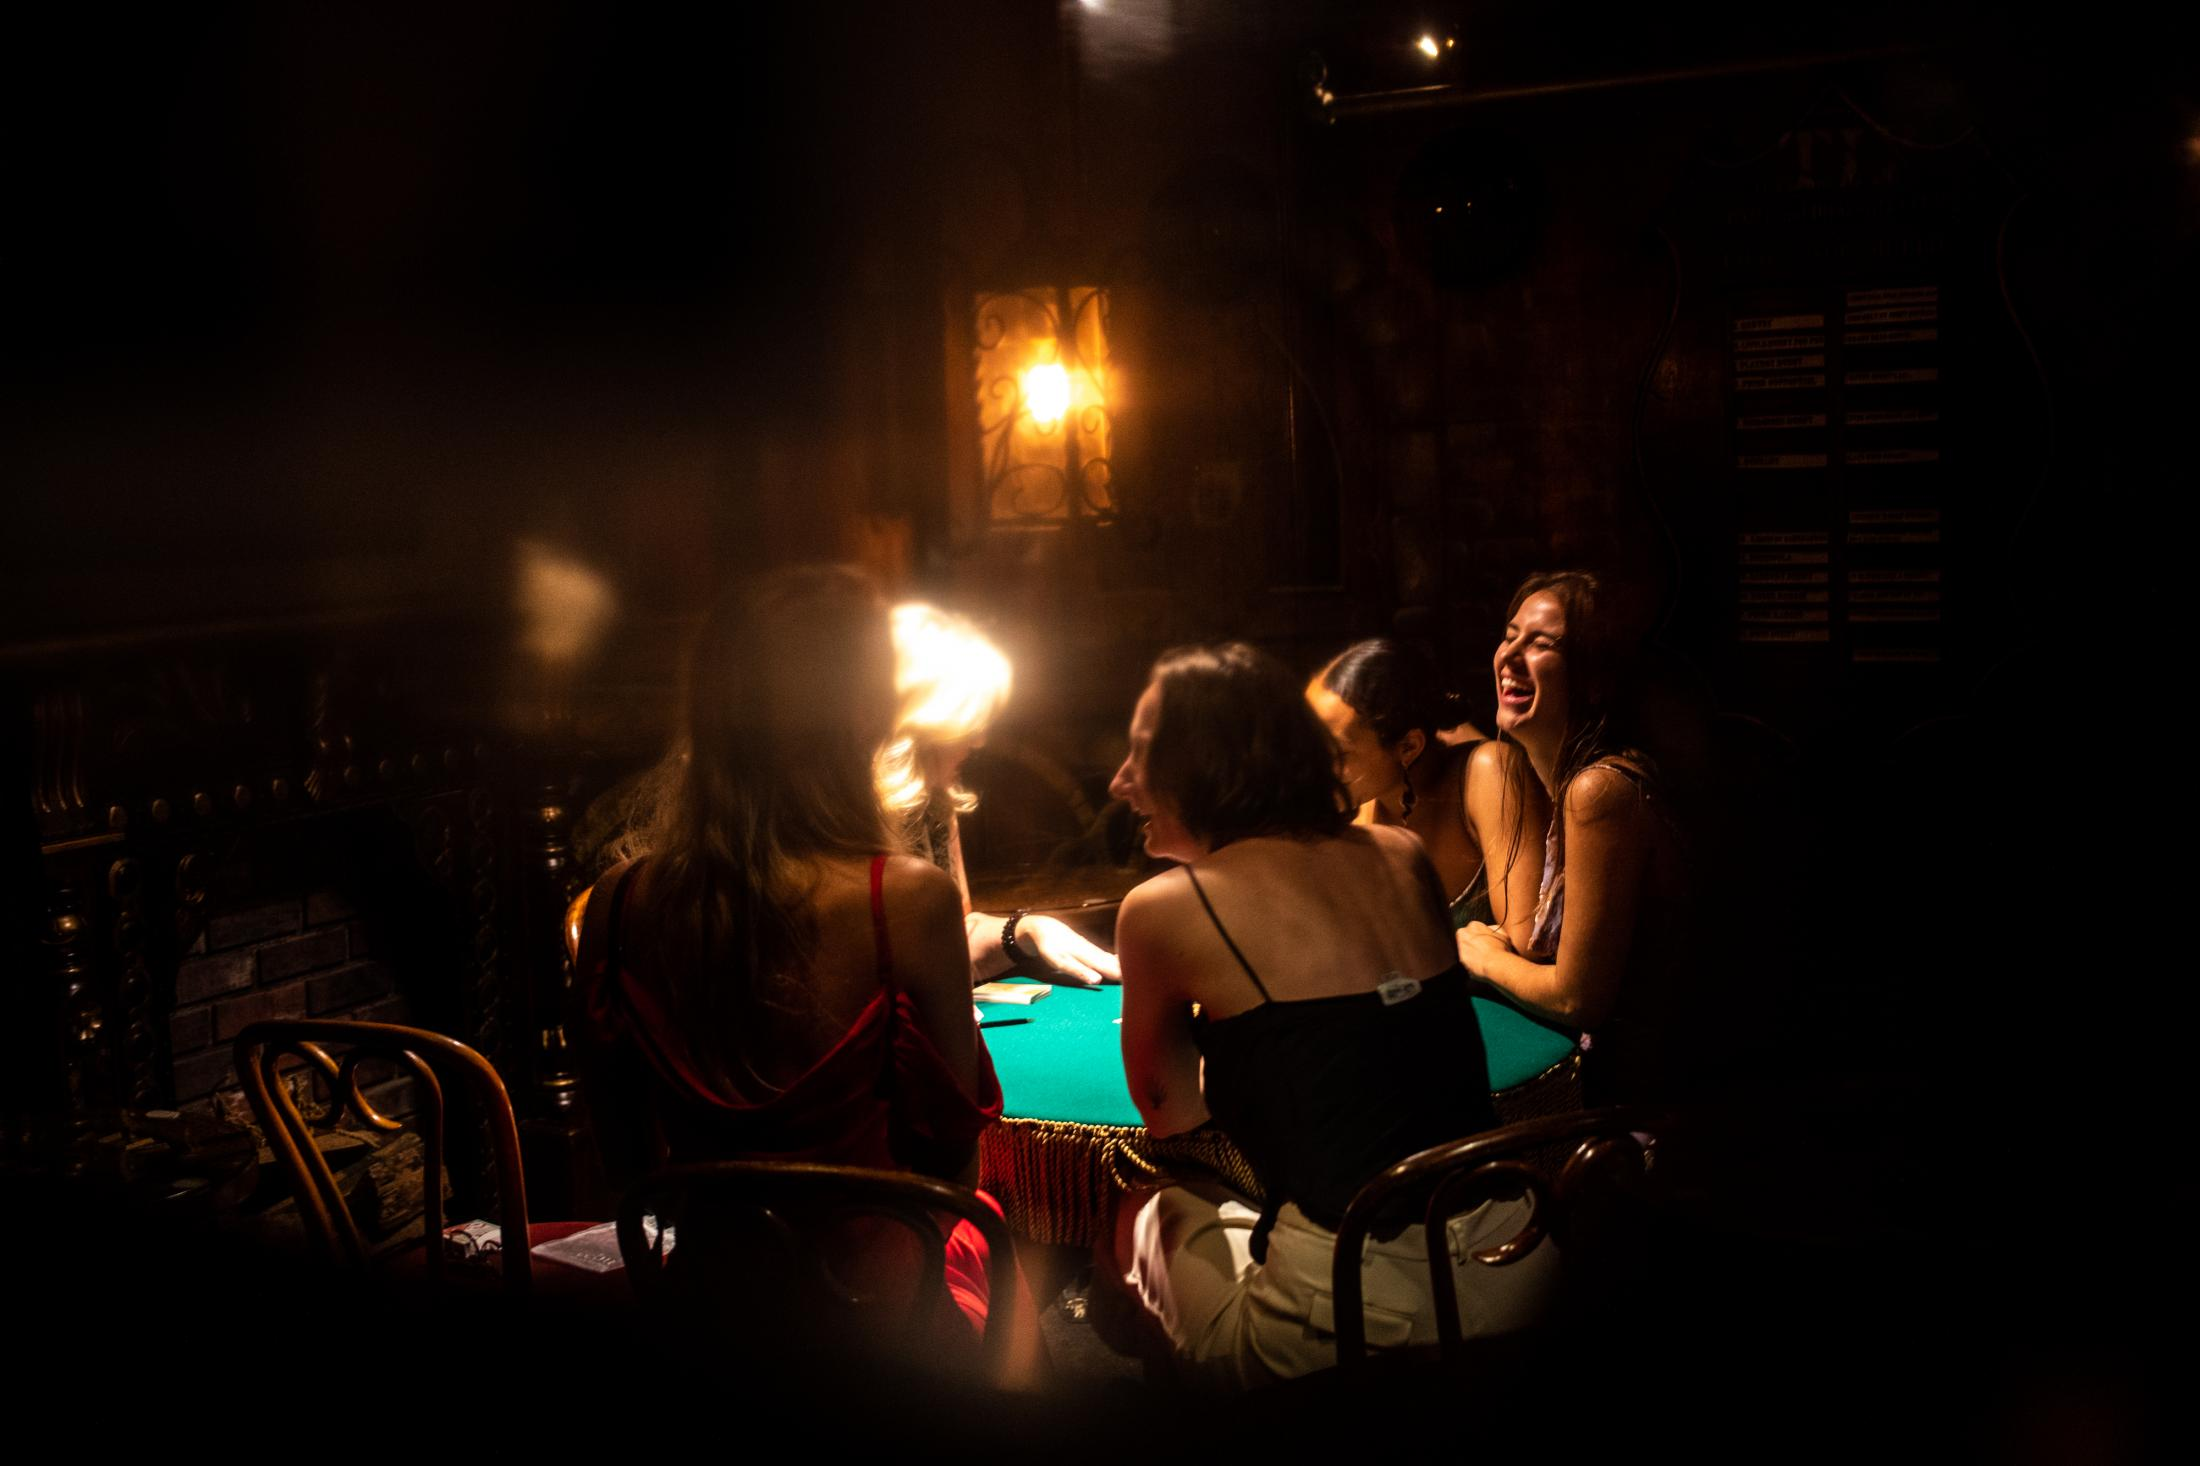 Breeanin Hansteen, Sasha Rieders, Micaela Morton and Magdalena Rieders watch Cydney Kaplan, while she performs a card trick at the Magic Castle in Hollywood.